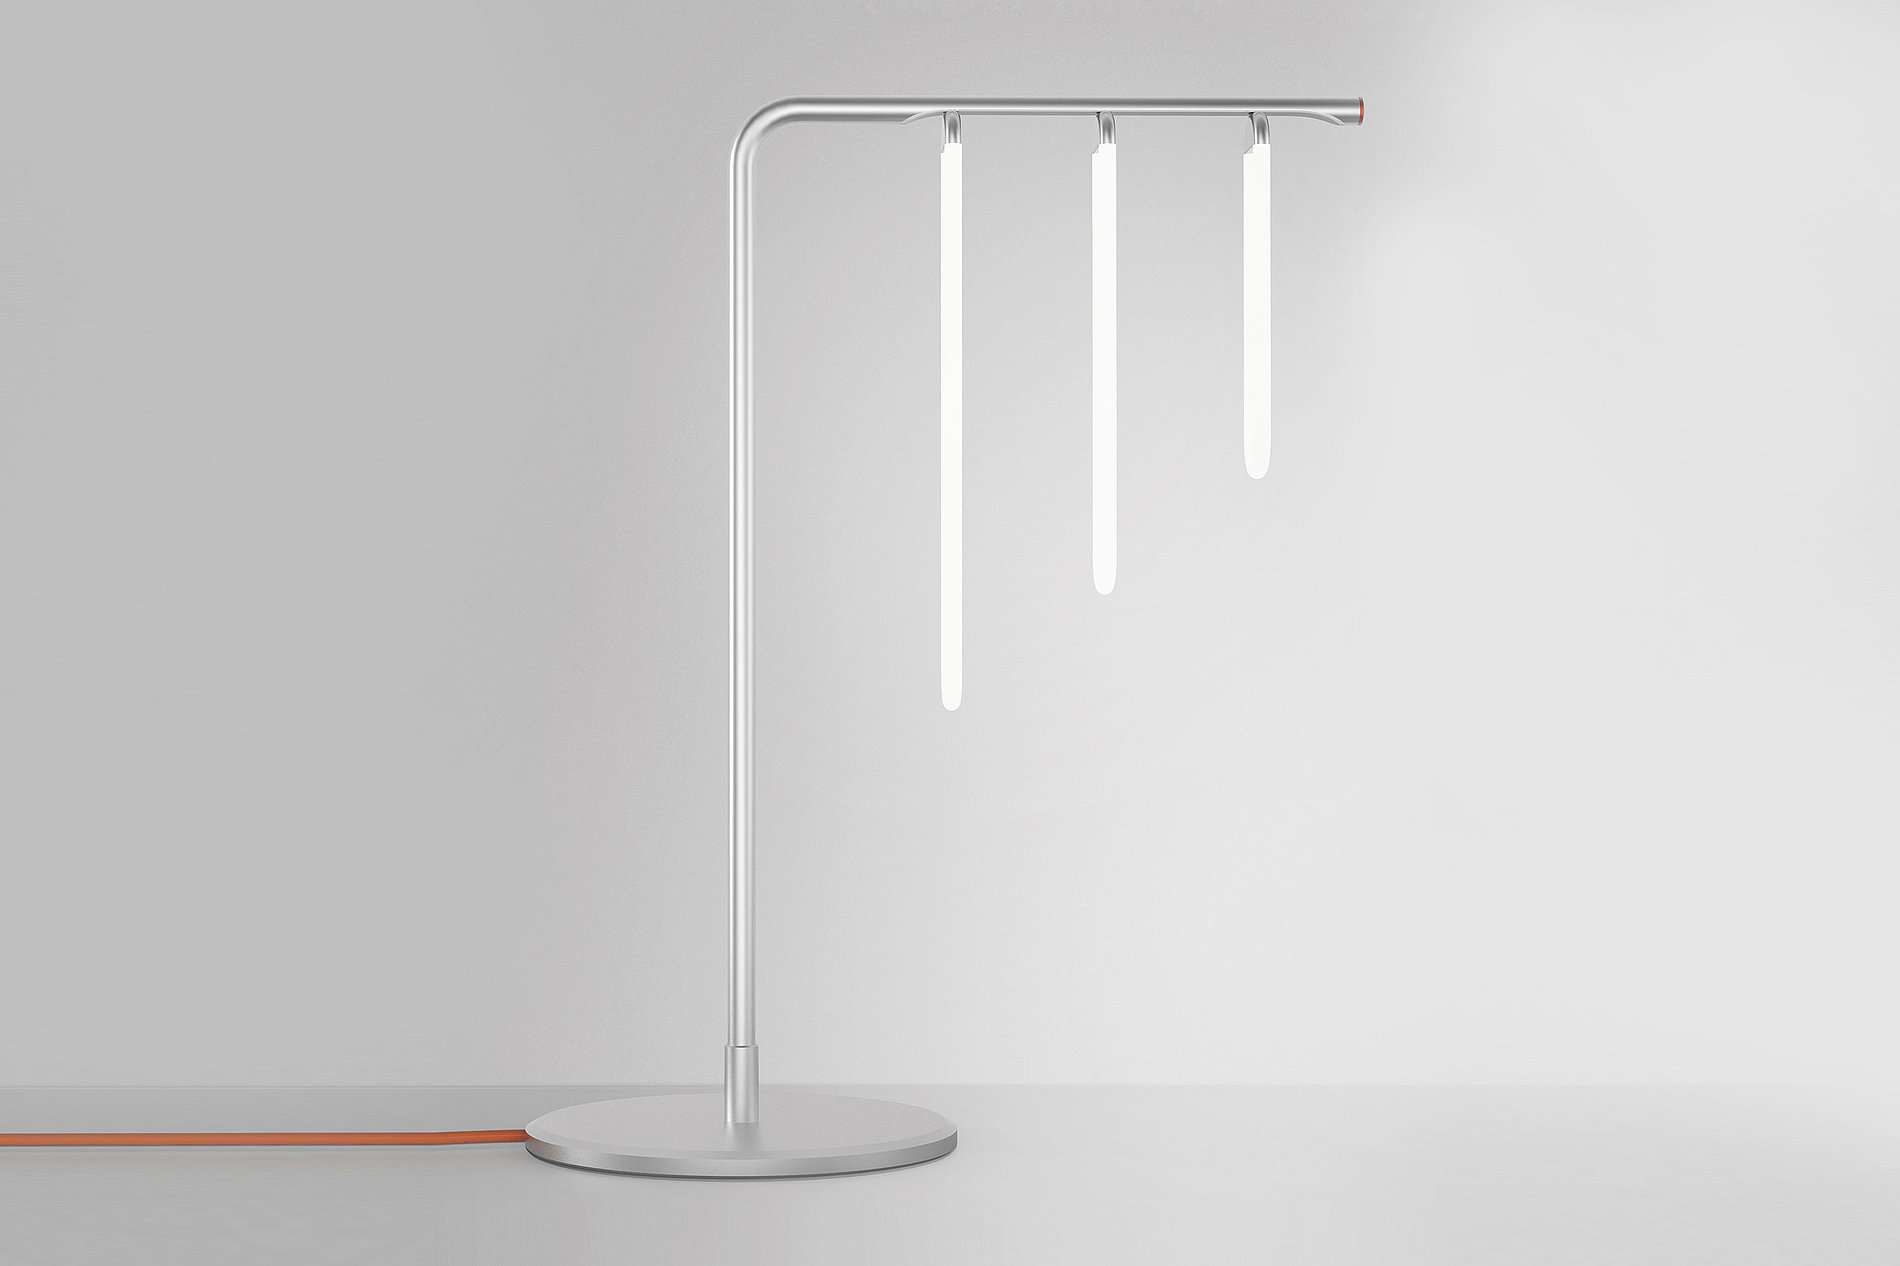 Modular Desk Lamp | Red Dot Design Award